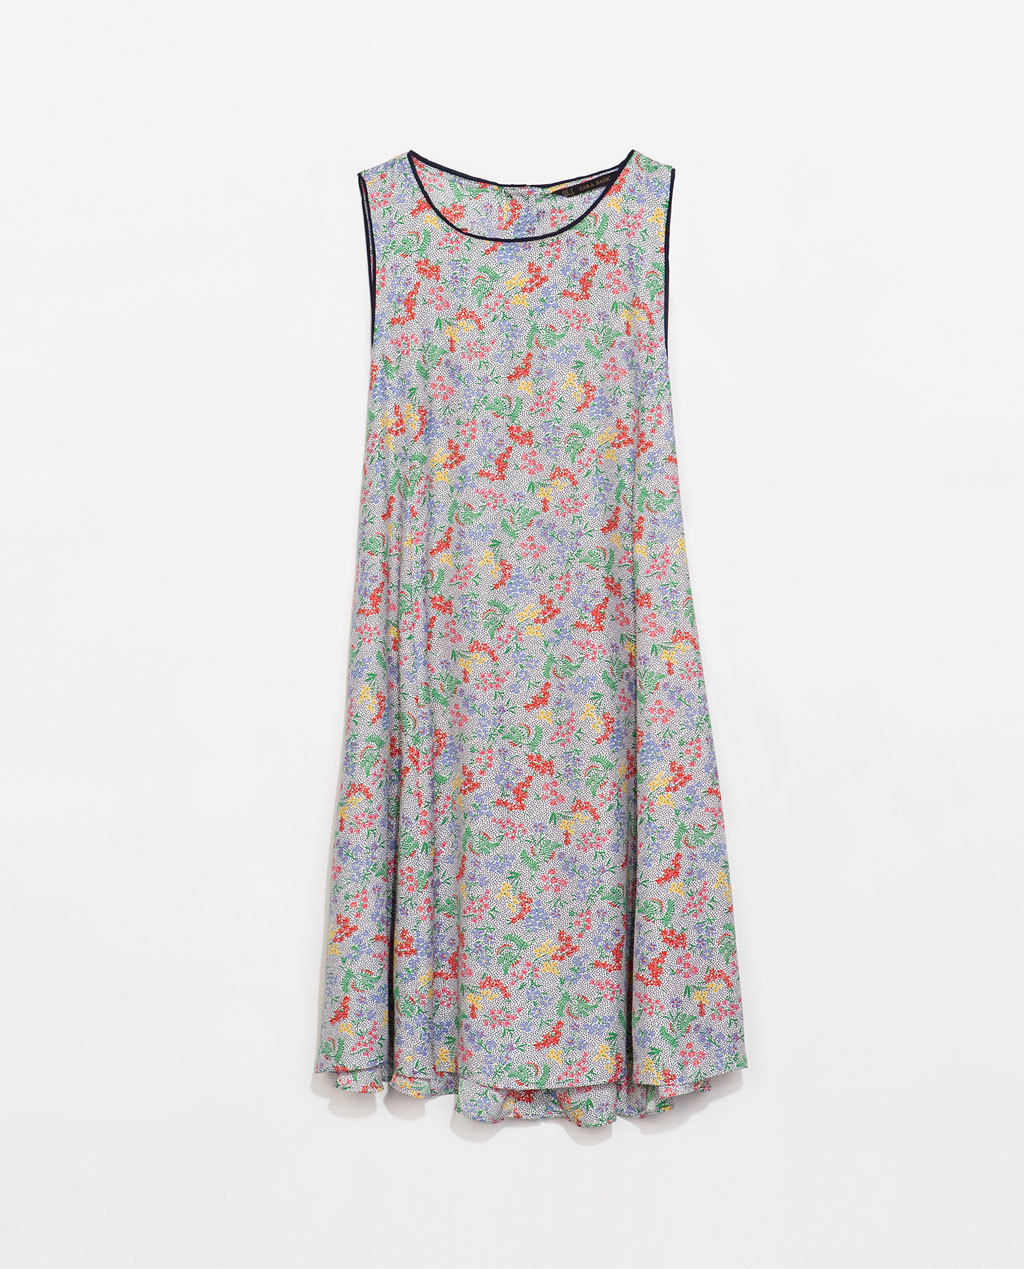 Floral Dress With Buttons At The Back - style: smock; length: mid thigh; neckline: round neck; fit: loose; sleeve style: sleeveless; occasions: casual, evening, holiday, creative work; fibres: polyester/polyamide - 100%; predominant colour: multicoloured; sleeve length: sleeveless; texture group: crepes; pattern type: fabric; pattern size: standard; pattern: florals; season: s/s 2014; multicoloured: multicoloured